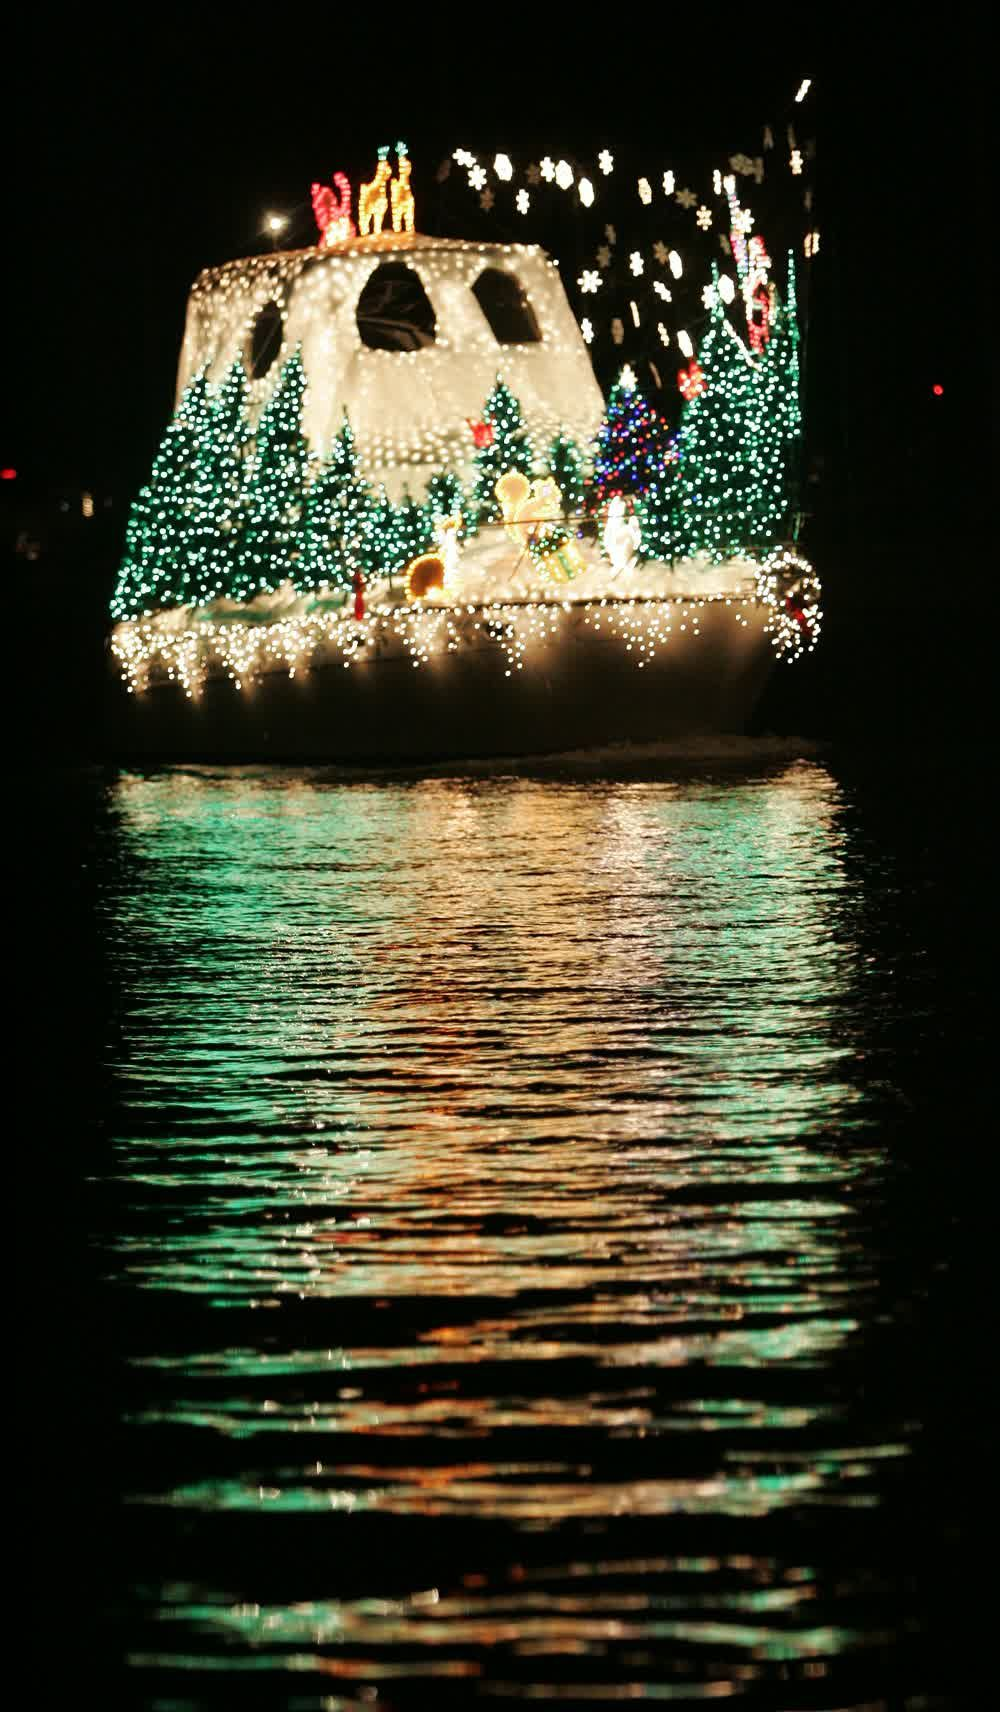 title: Beautifully Lit Up Boat with Christmas Light Decorations